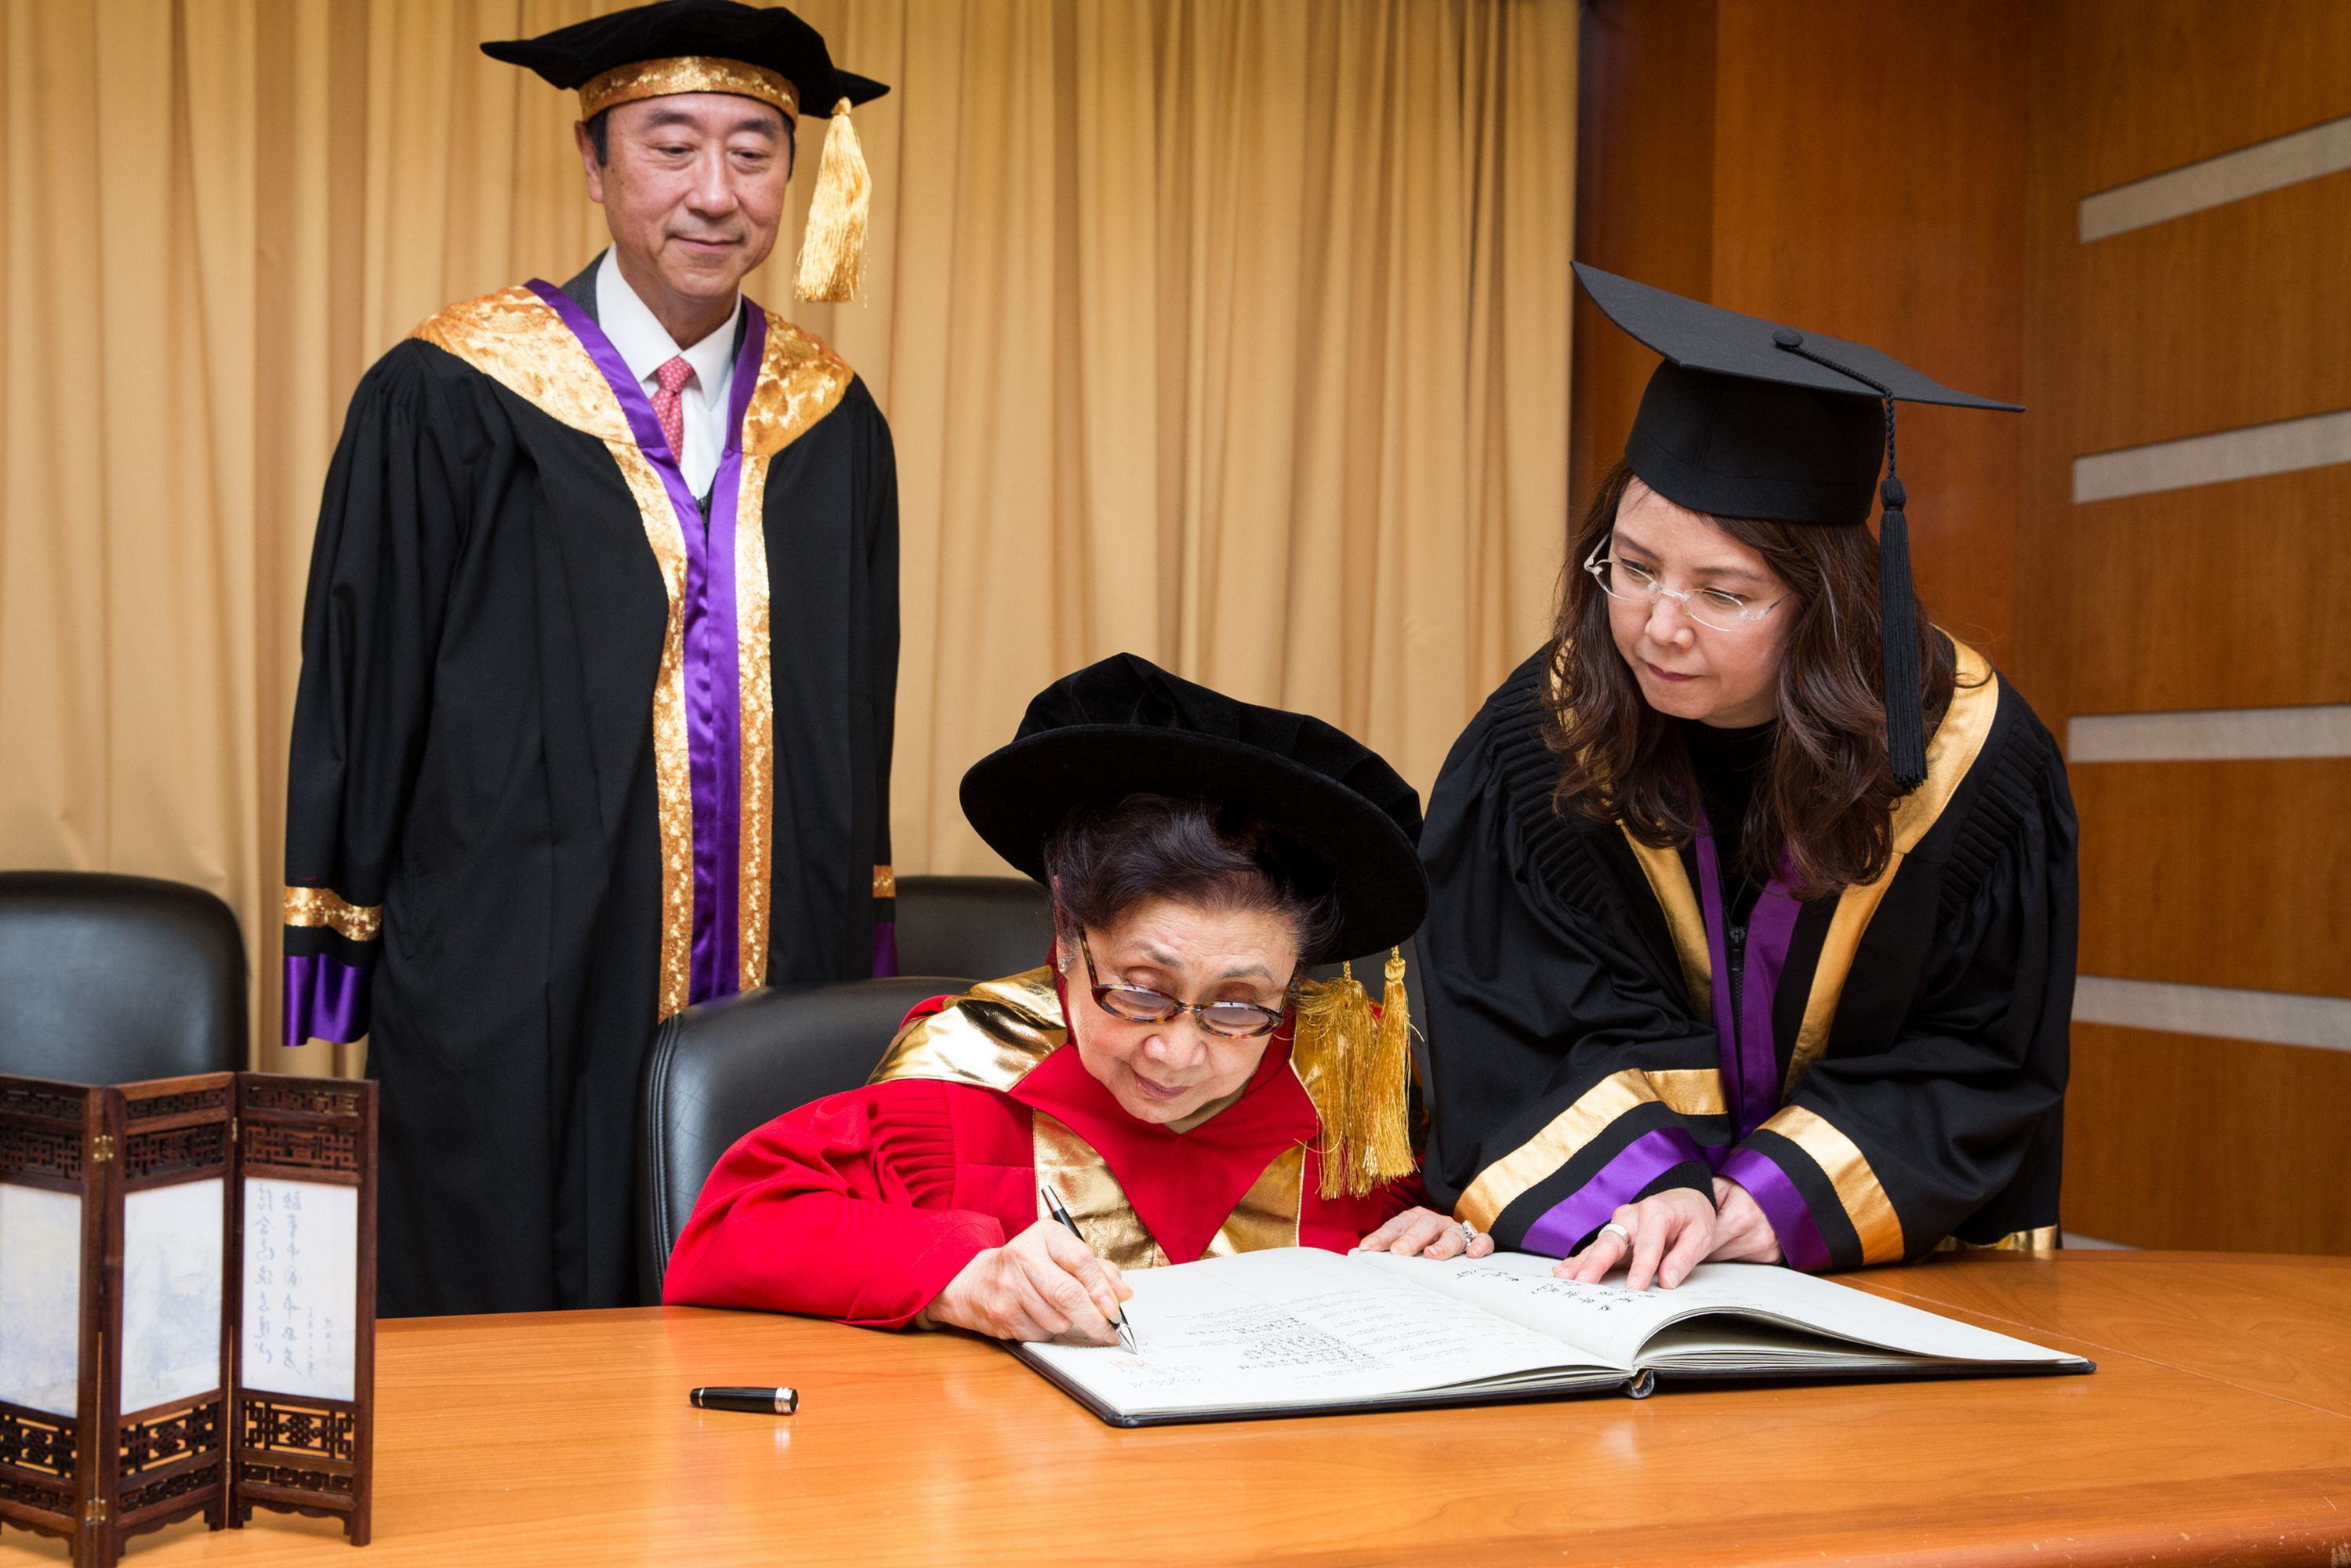 Dr. CHAN Shuk-leung (middle) signs on the Register of Honorary Graduates